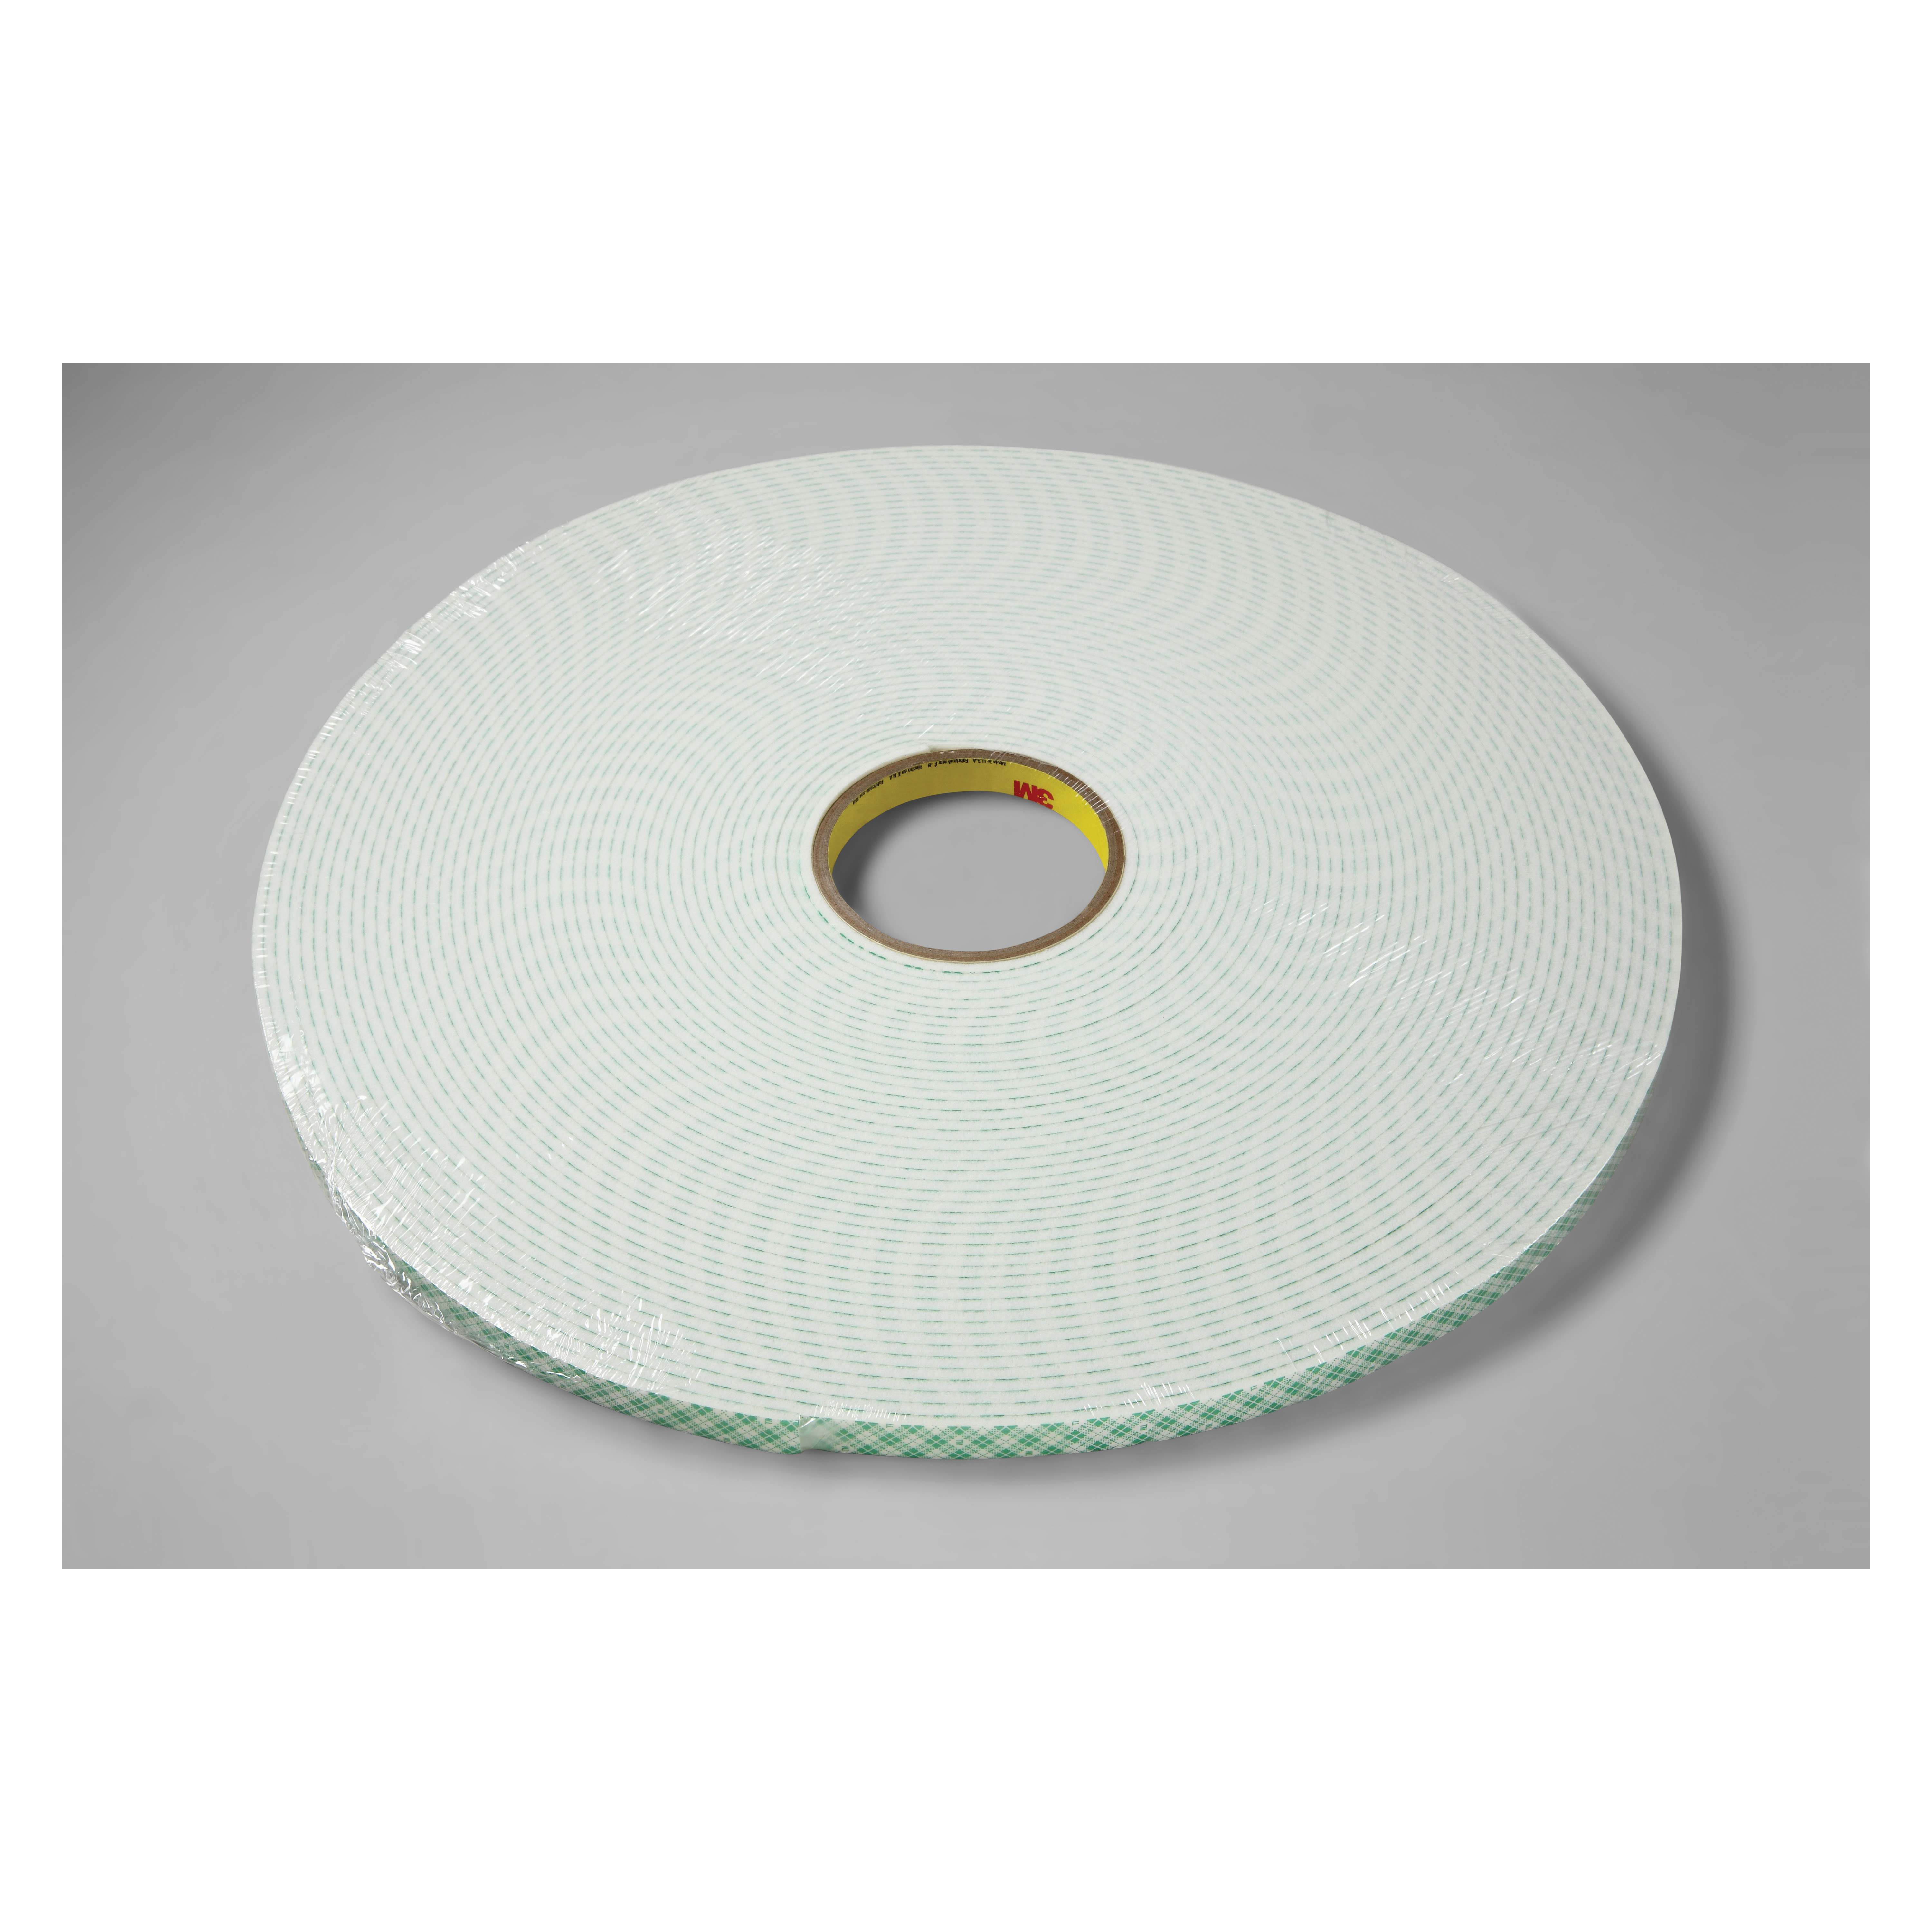 3M™ 021200-03392 Double Coated Tape, 18 yd L x 1/2 in W, 250 mil THK, Acrylic Adhesive, Urethane Foam Backing, Off-White